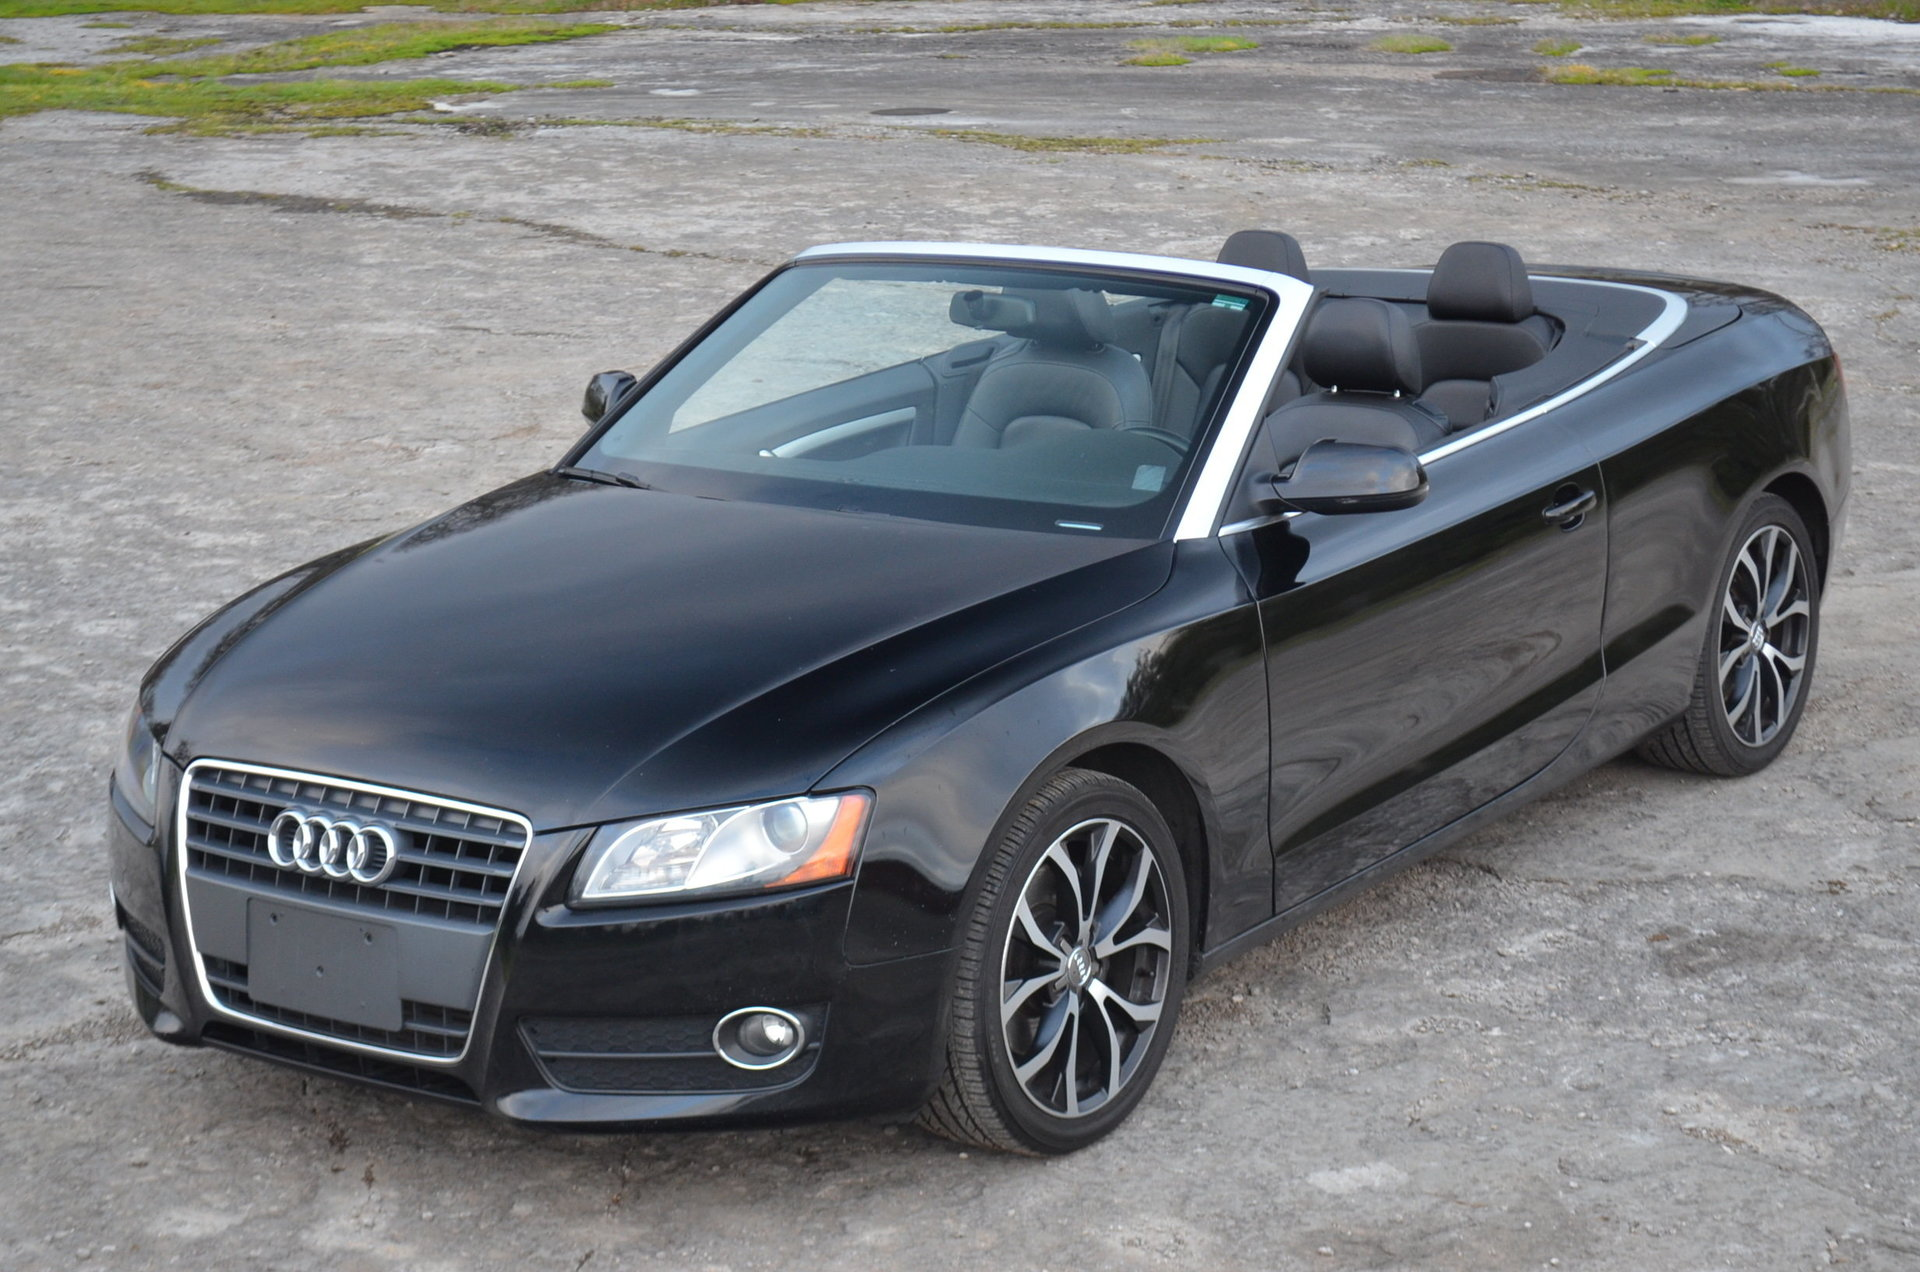 2010 audi a5 for sale 83849 mcg. Black Bedroom Furniture Sets. Home Design Ideas